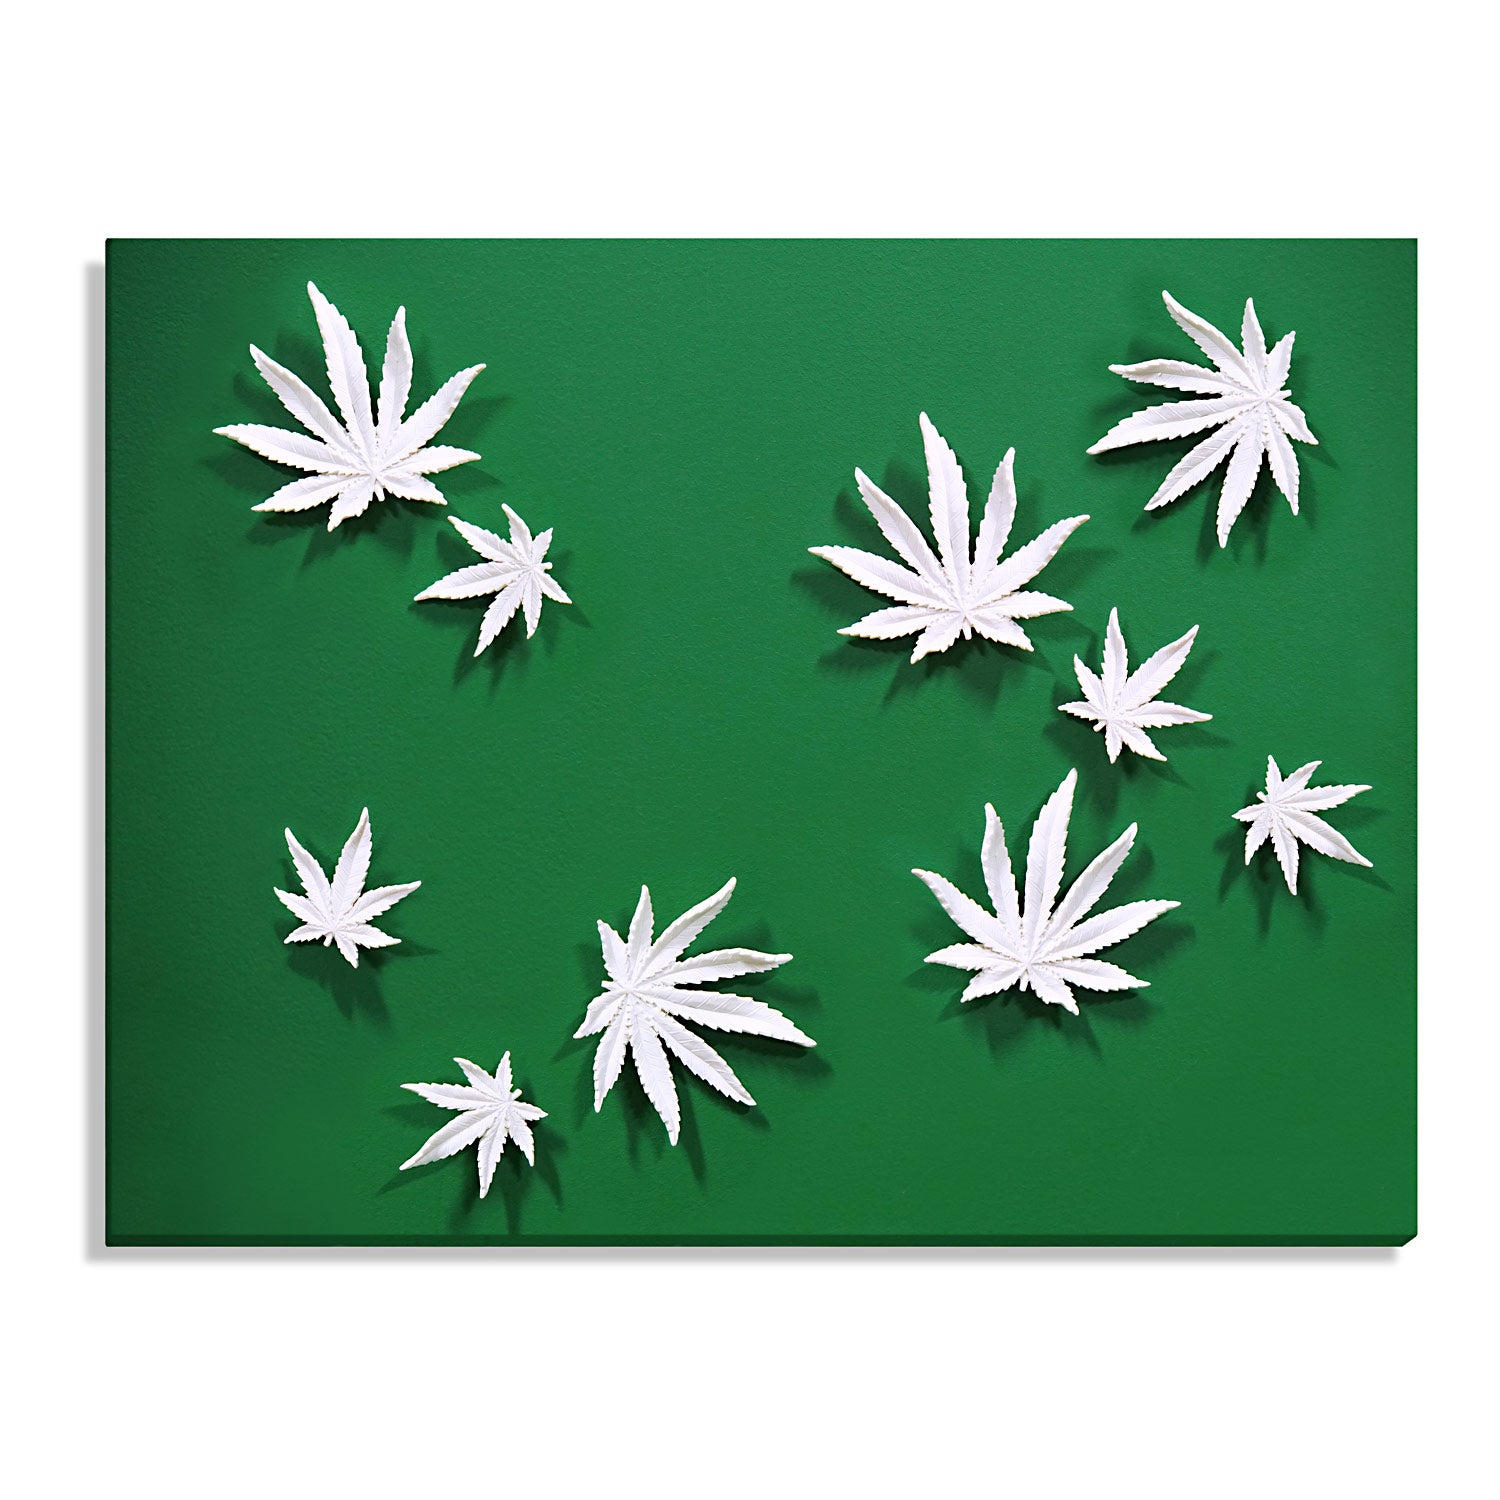 Wall Play™ Substrate, 'Cannabis Leaves'